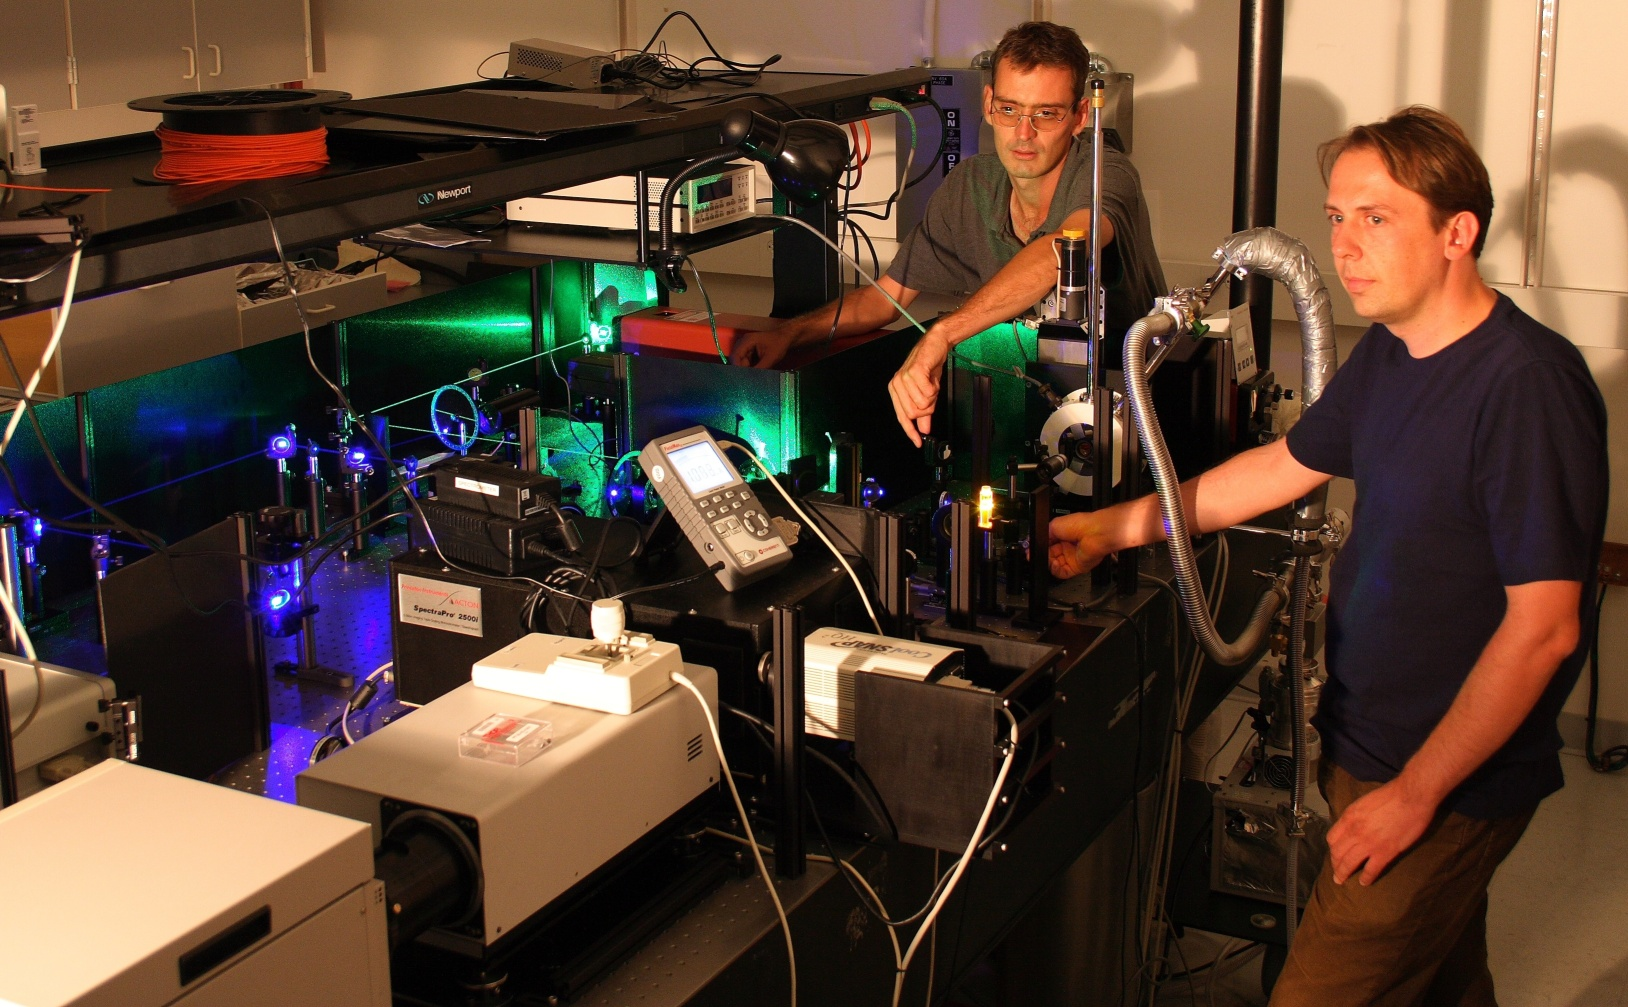 """University of Utah physicists John Lupton and Christoph Boehme use green and blue laser beams to """"excite"""" a small piece of an organic or """"plastic"""" polymer (glowing orange near Boehme's right hand) that may serve as a light-emitting diode (LED) for computer and TV displays and perhaps lighting."""